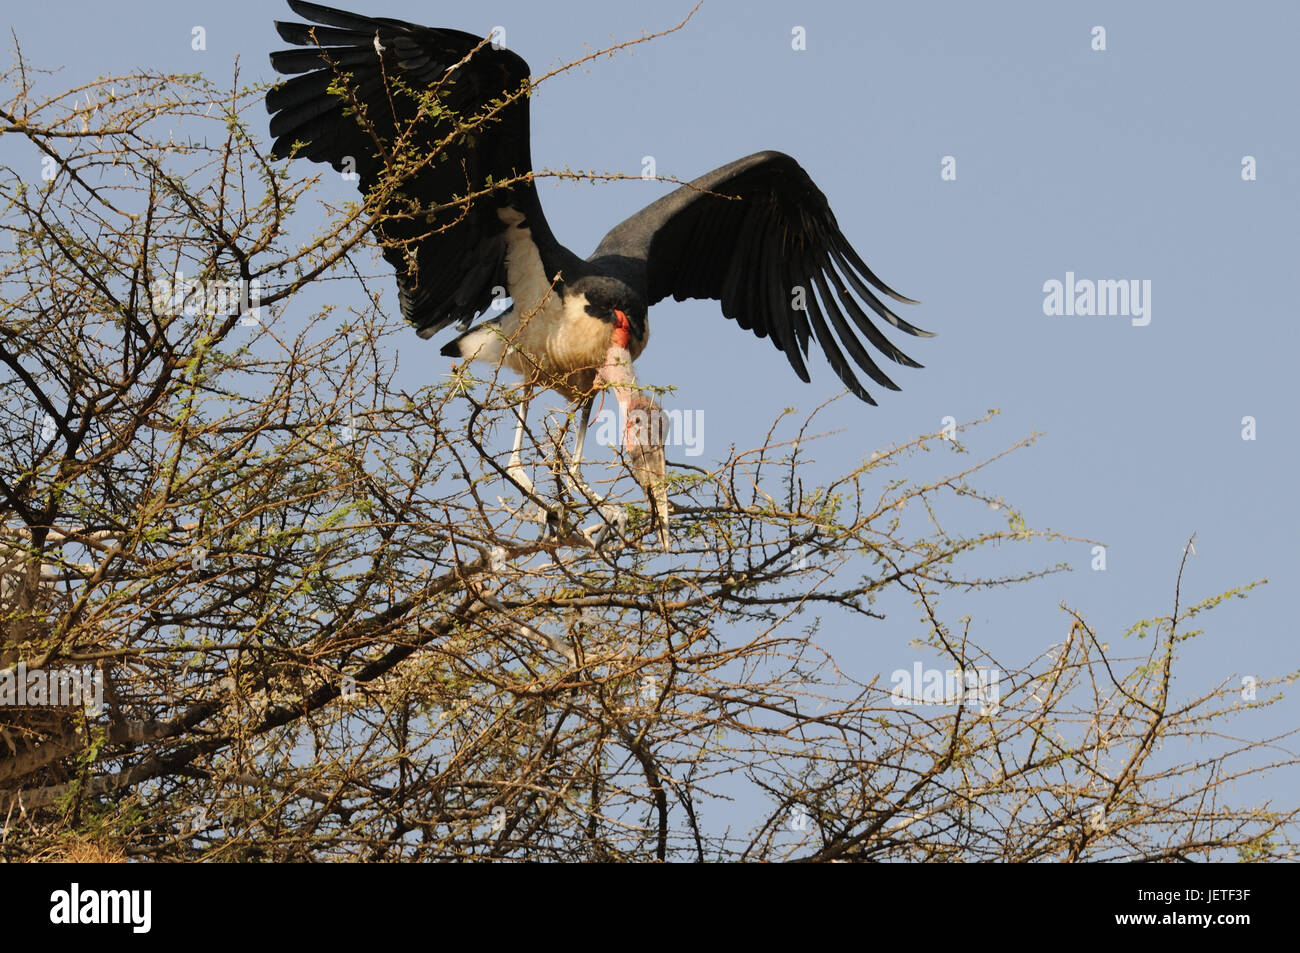 Marabou, tree, Nechisar national park, south Ethiopia, Stock Photo